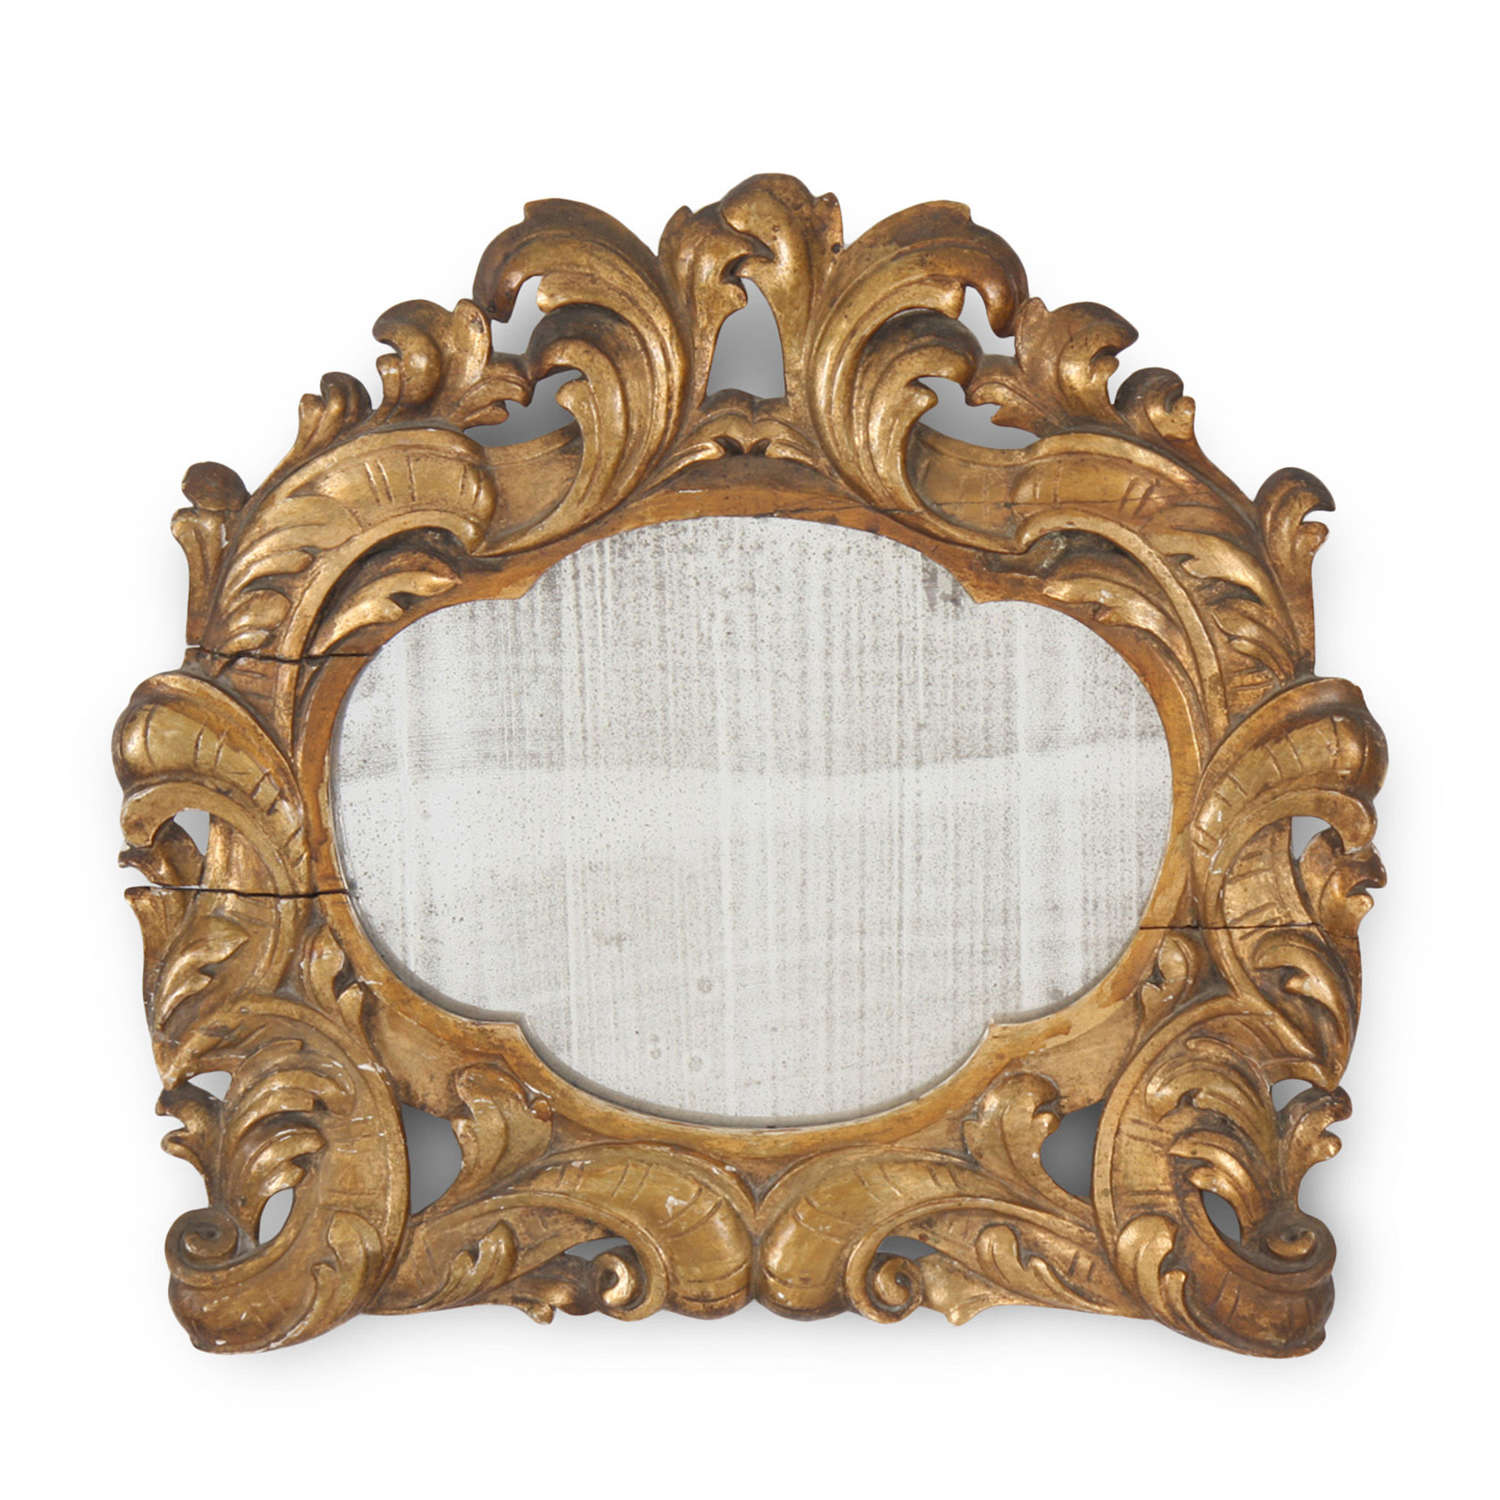 Italian Giltwood Mirror with Acanthus Leaf Detail